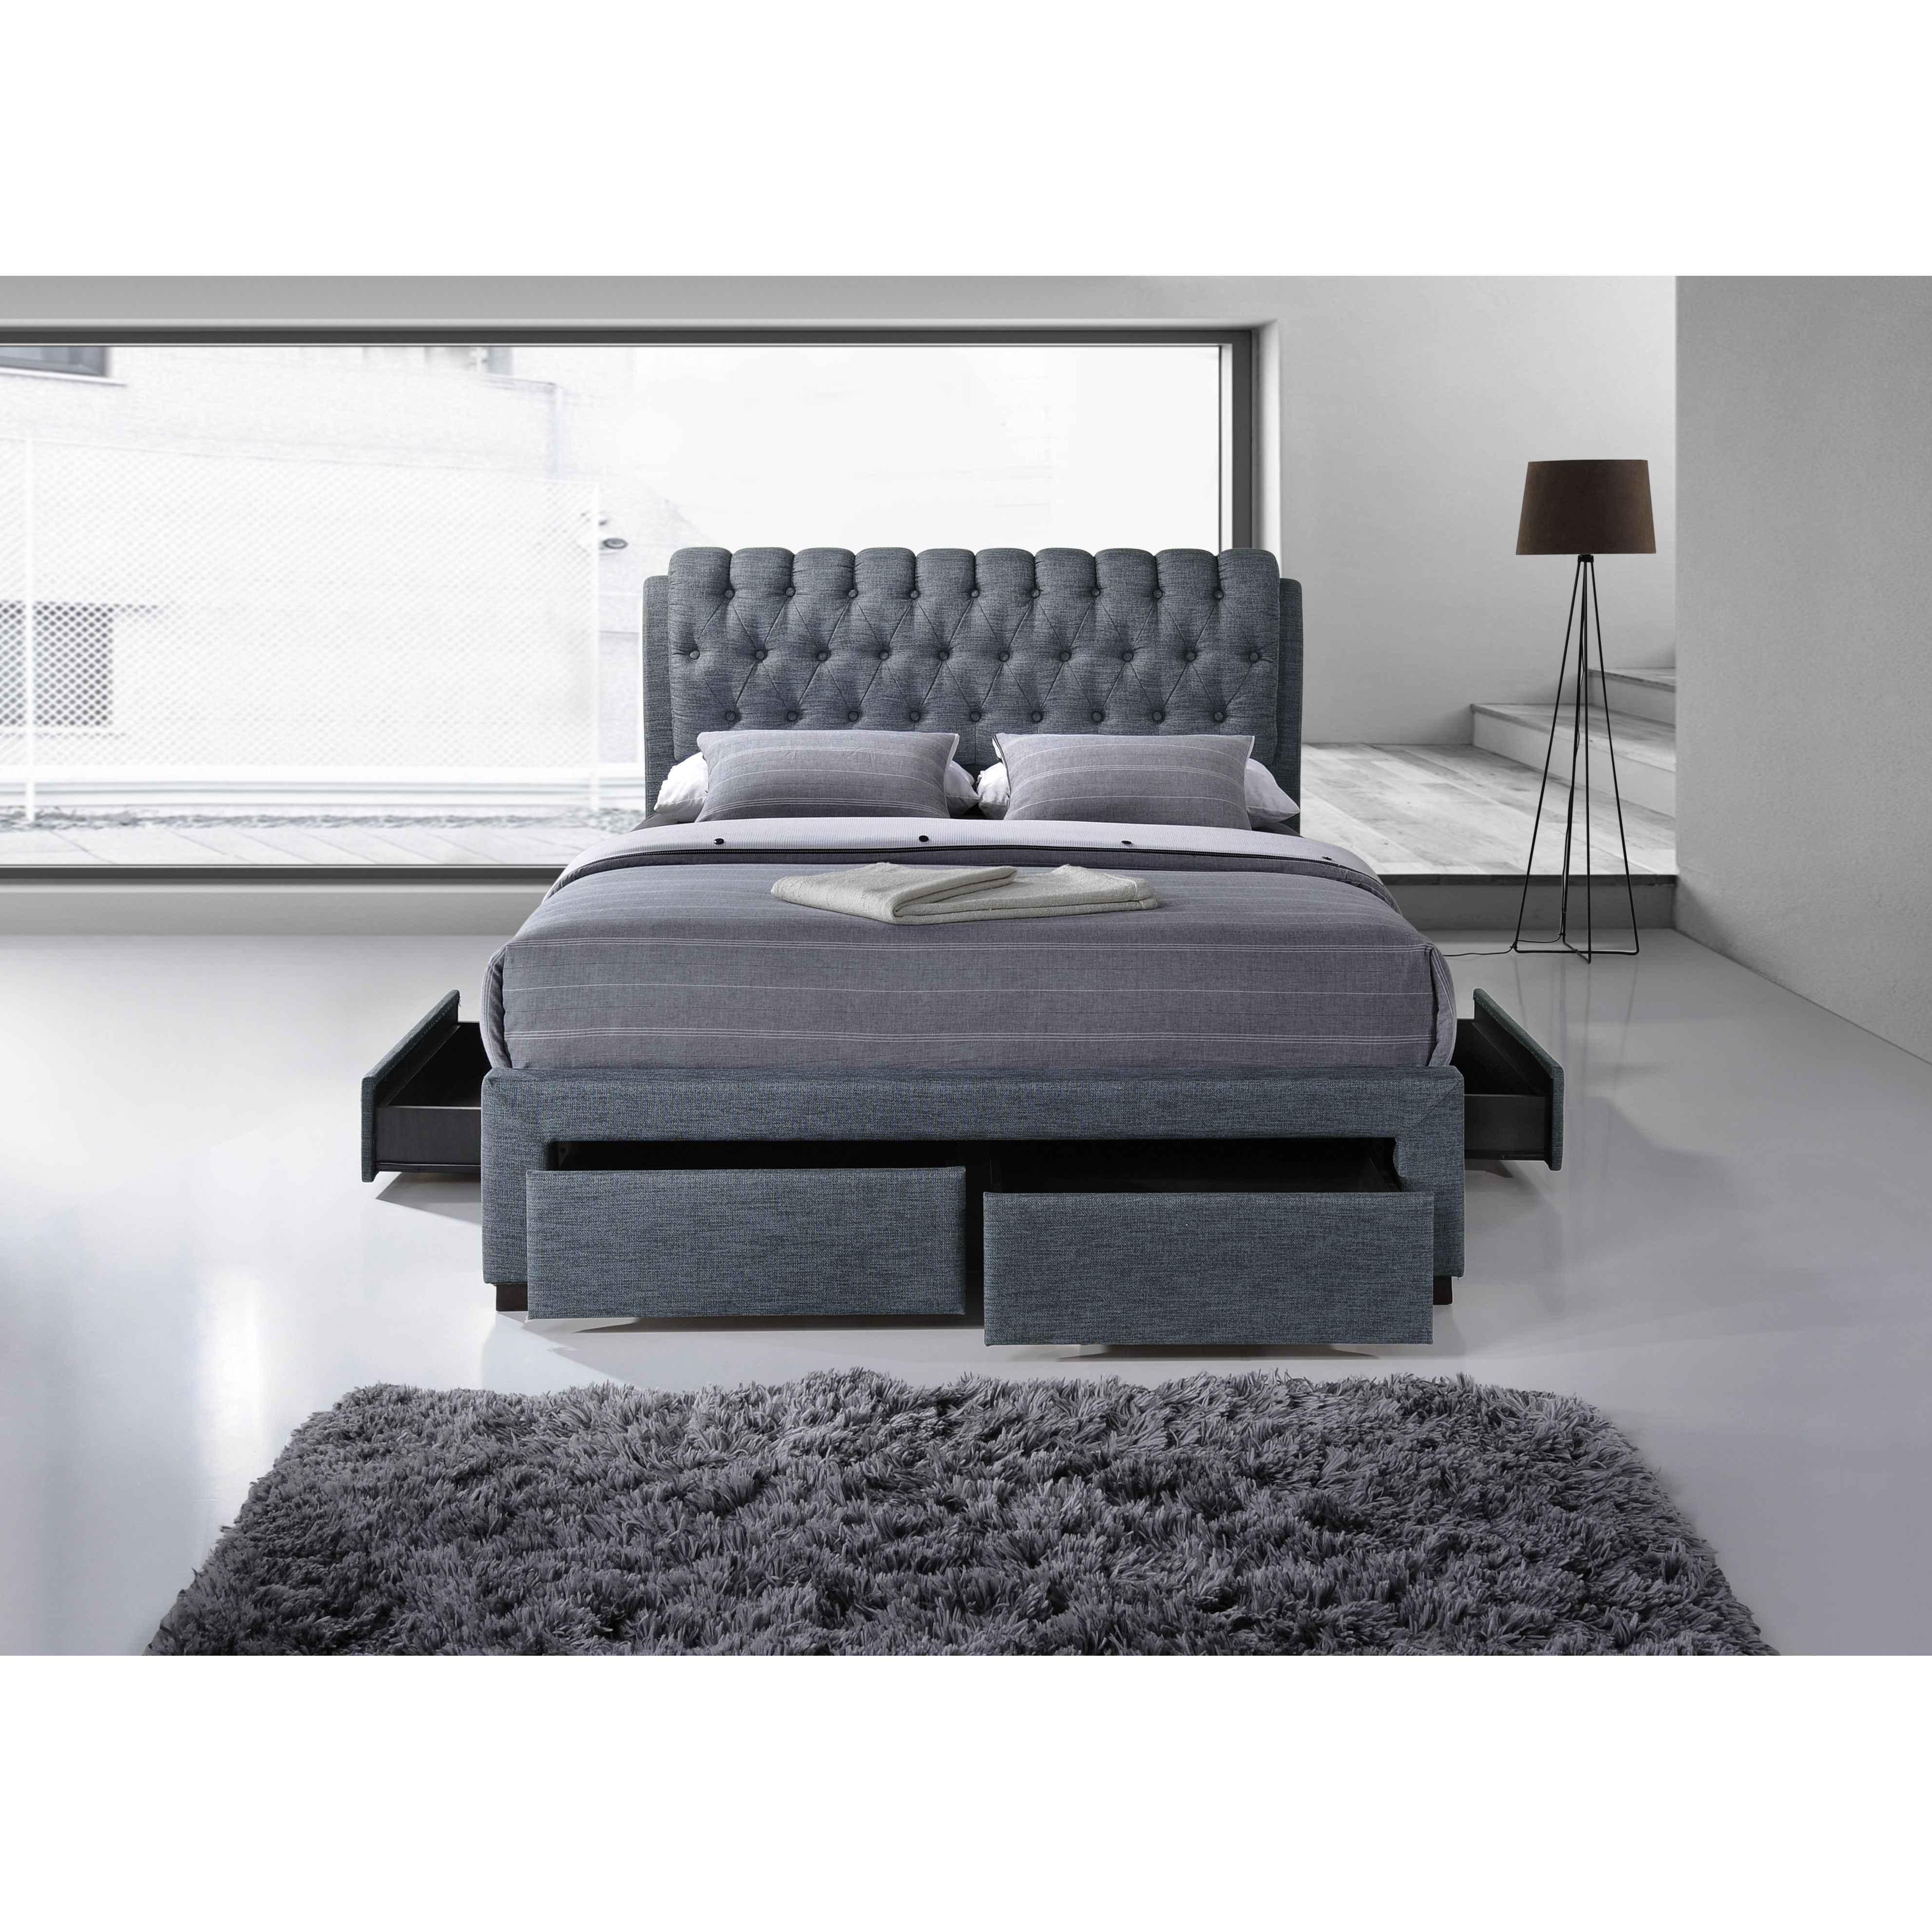 Castleton Home Fabric 4 Draw Front And Side Upholstered Storage Bed